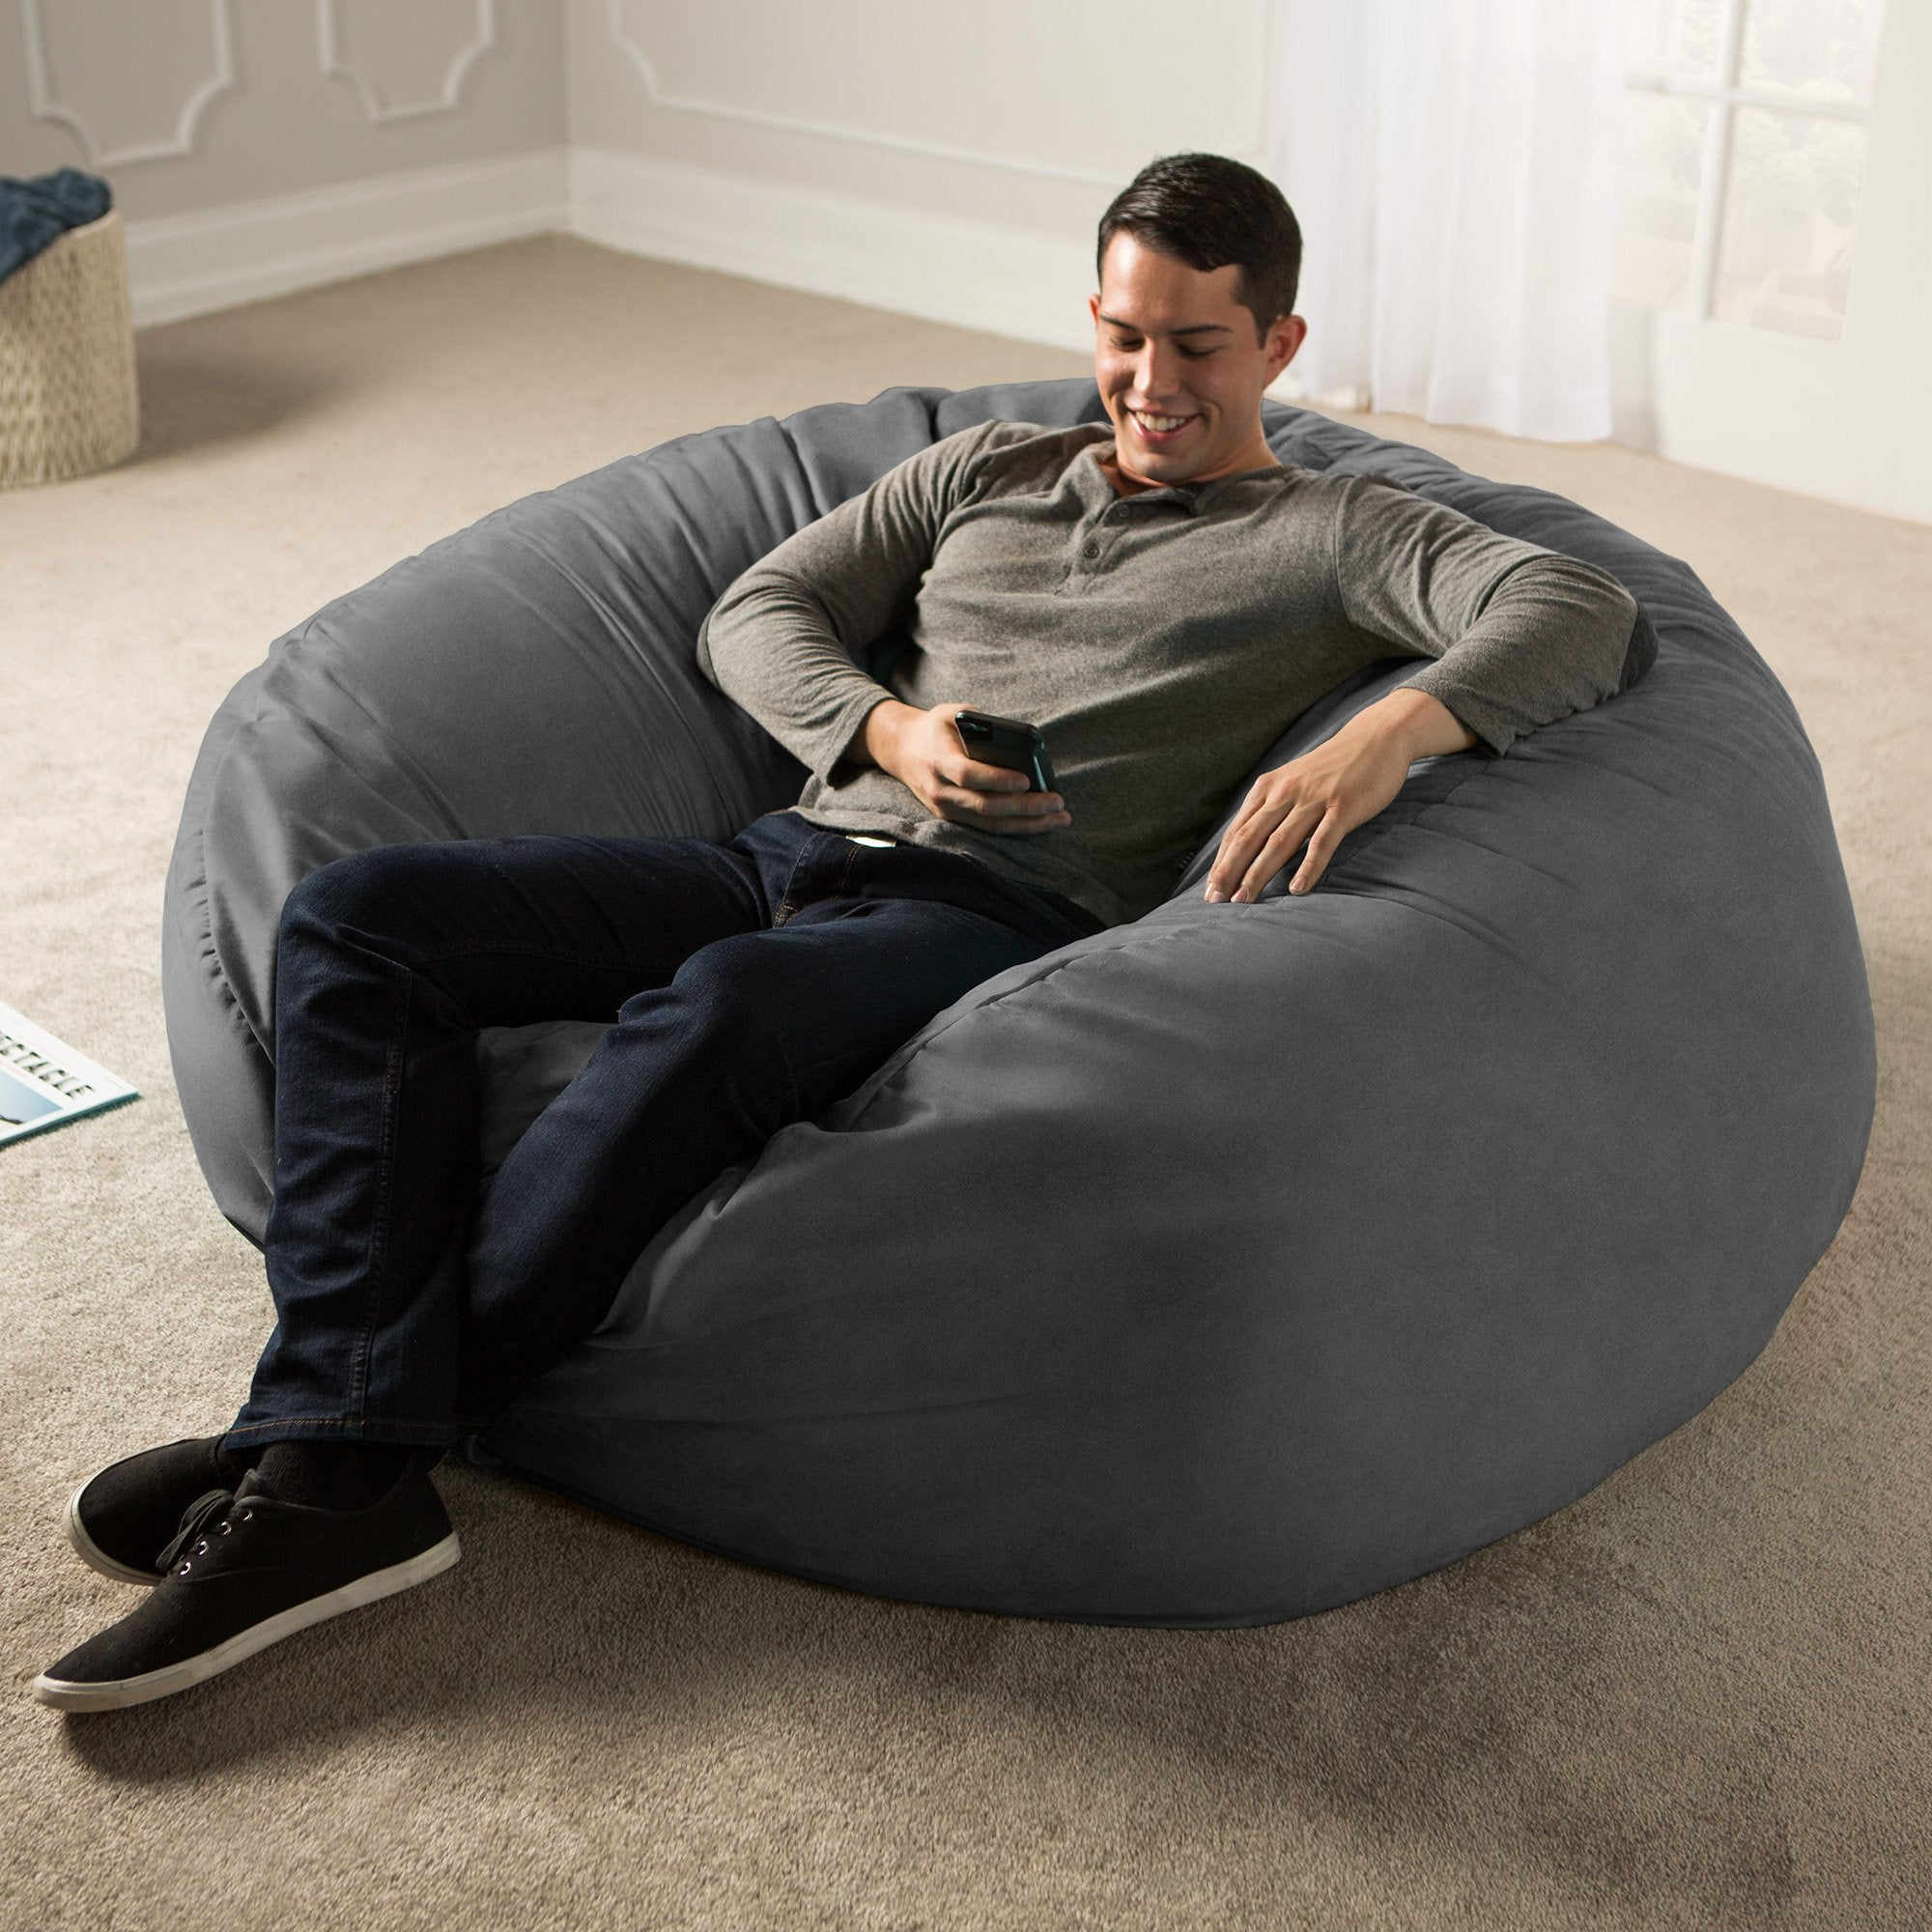 One Up Innovations Jaxx Saxx 5' Removable Cover Round Bean Bag in Navy